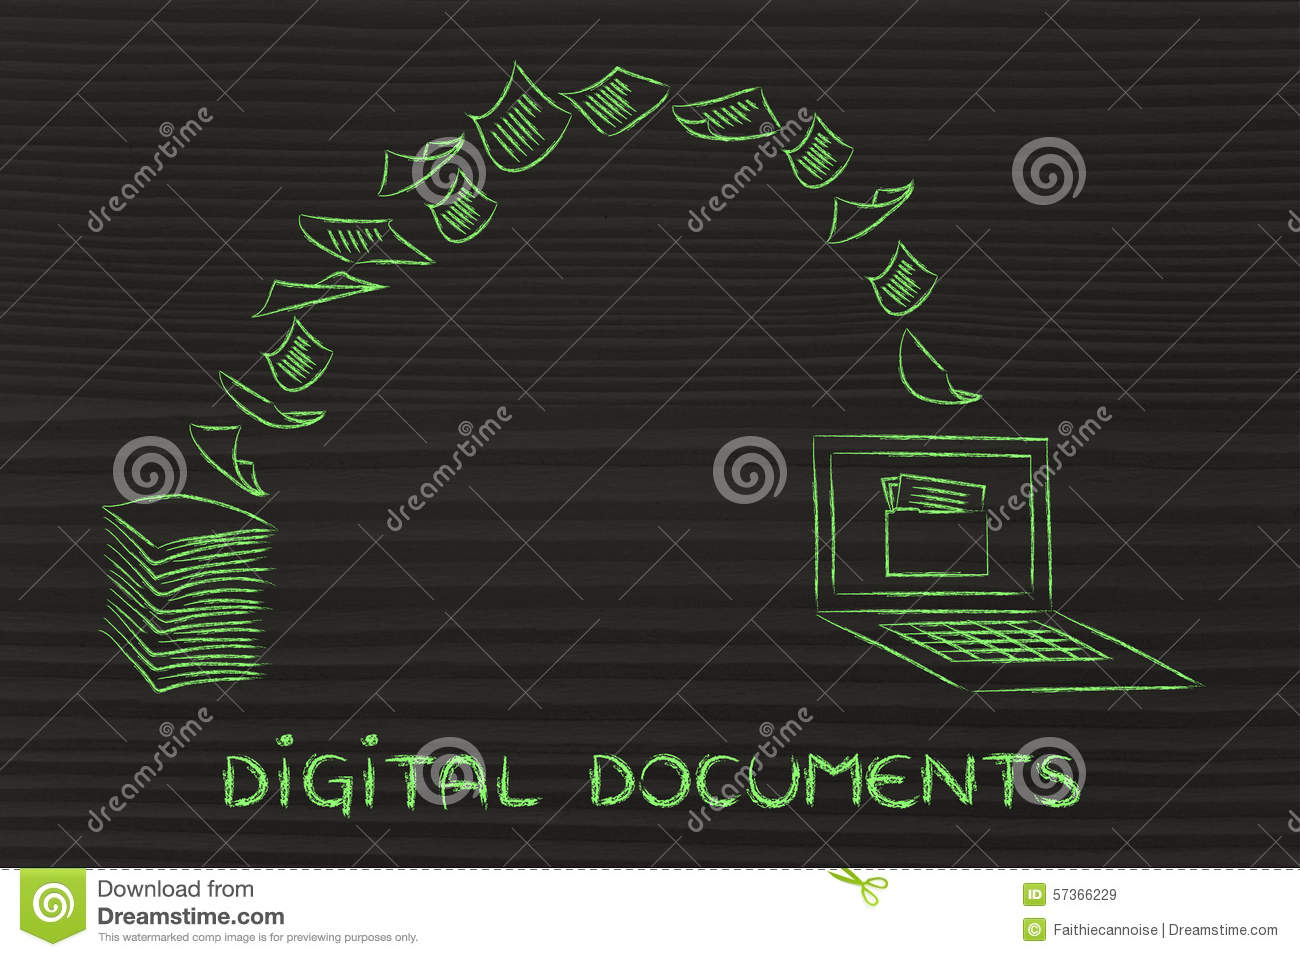 Digital Documents Scanning Paper And Turning It Into Data